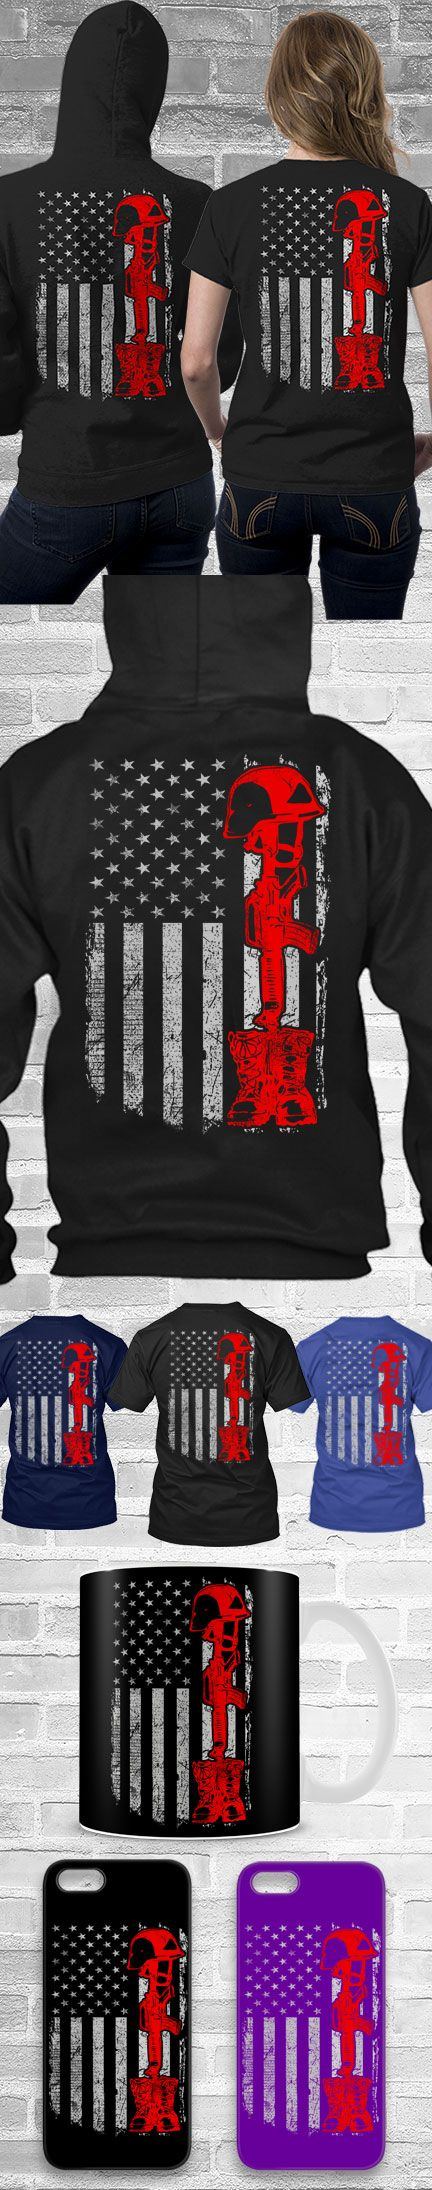 Fallen Soldier USA Flag Shirts! Click The Image To Buy It Now or Tag Someone You Want To Buy This For.  #soldier